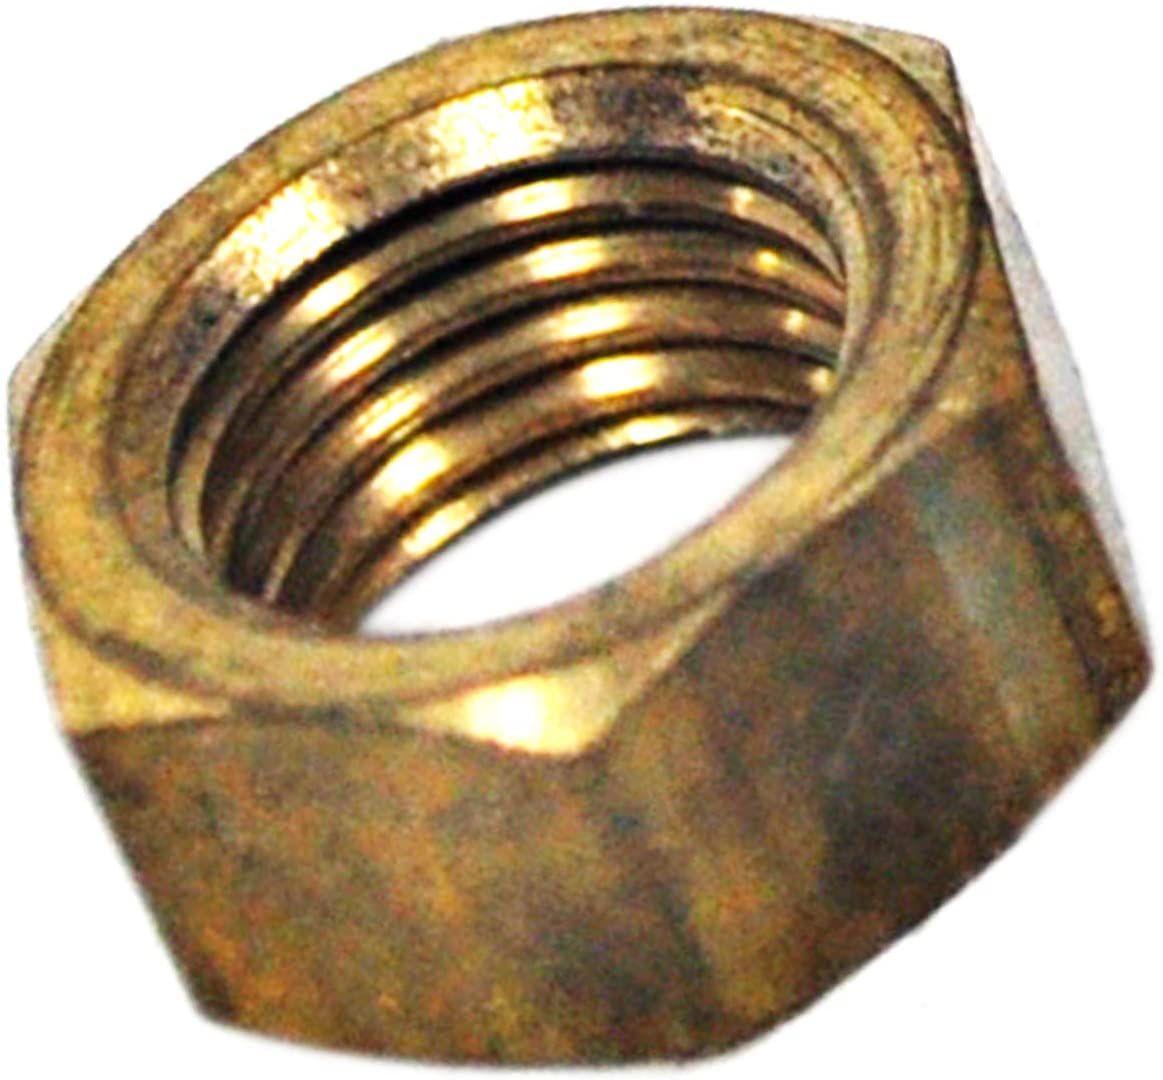 Ametek Lamb Rexair Model E Spider Nut R8416B